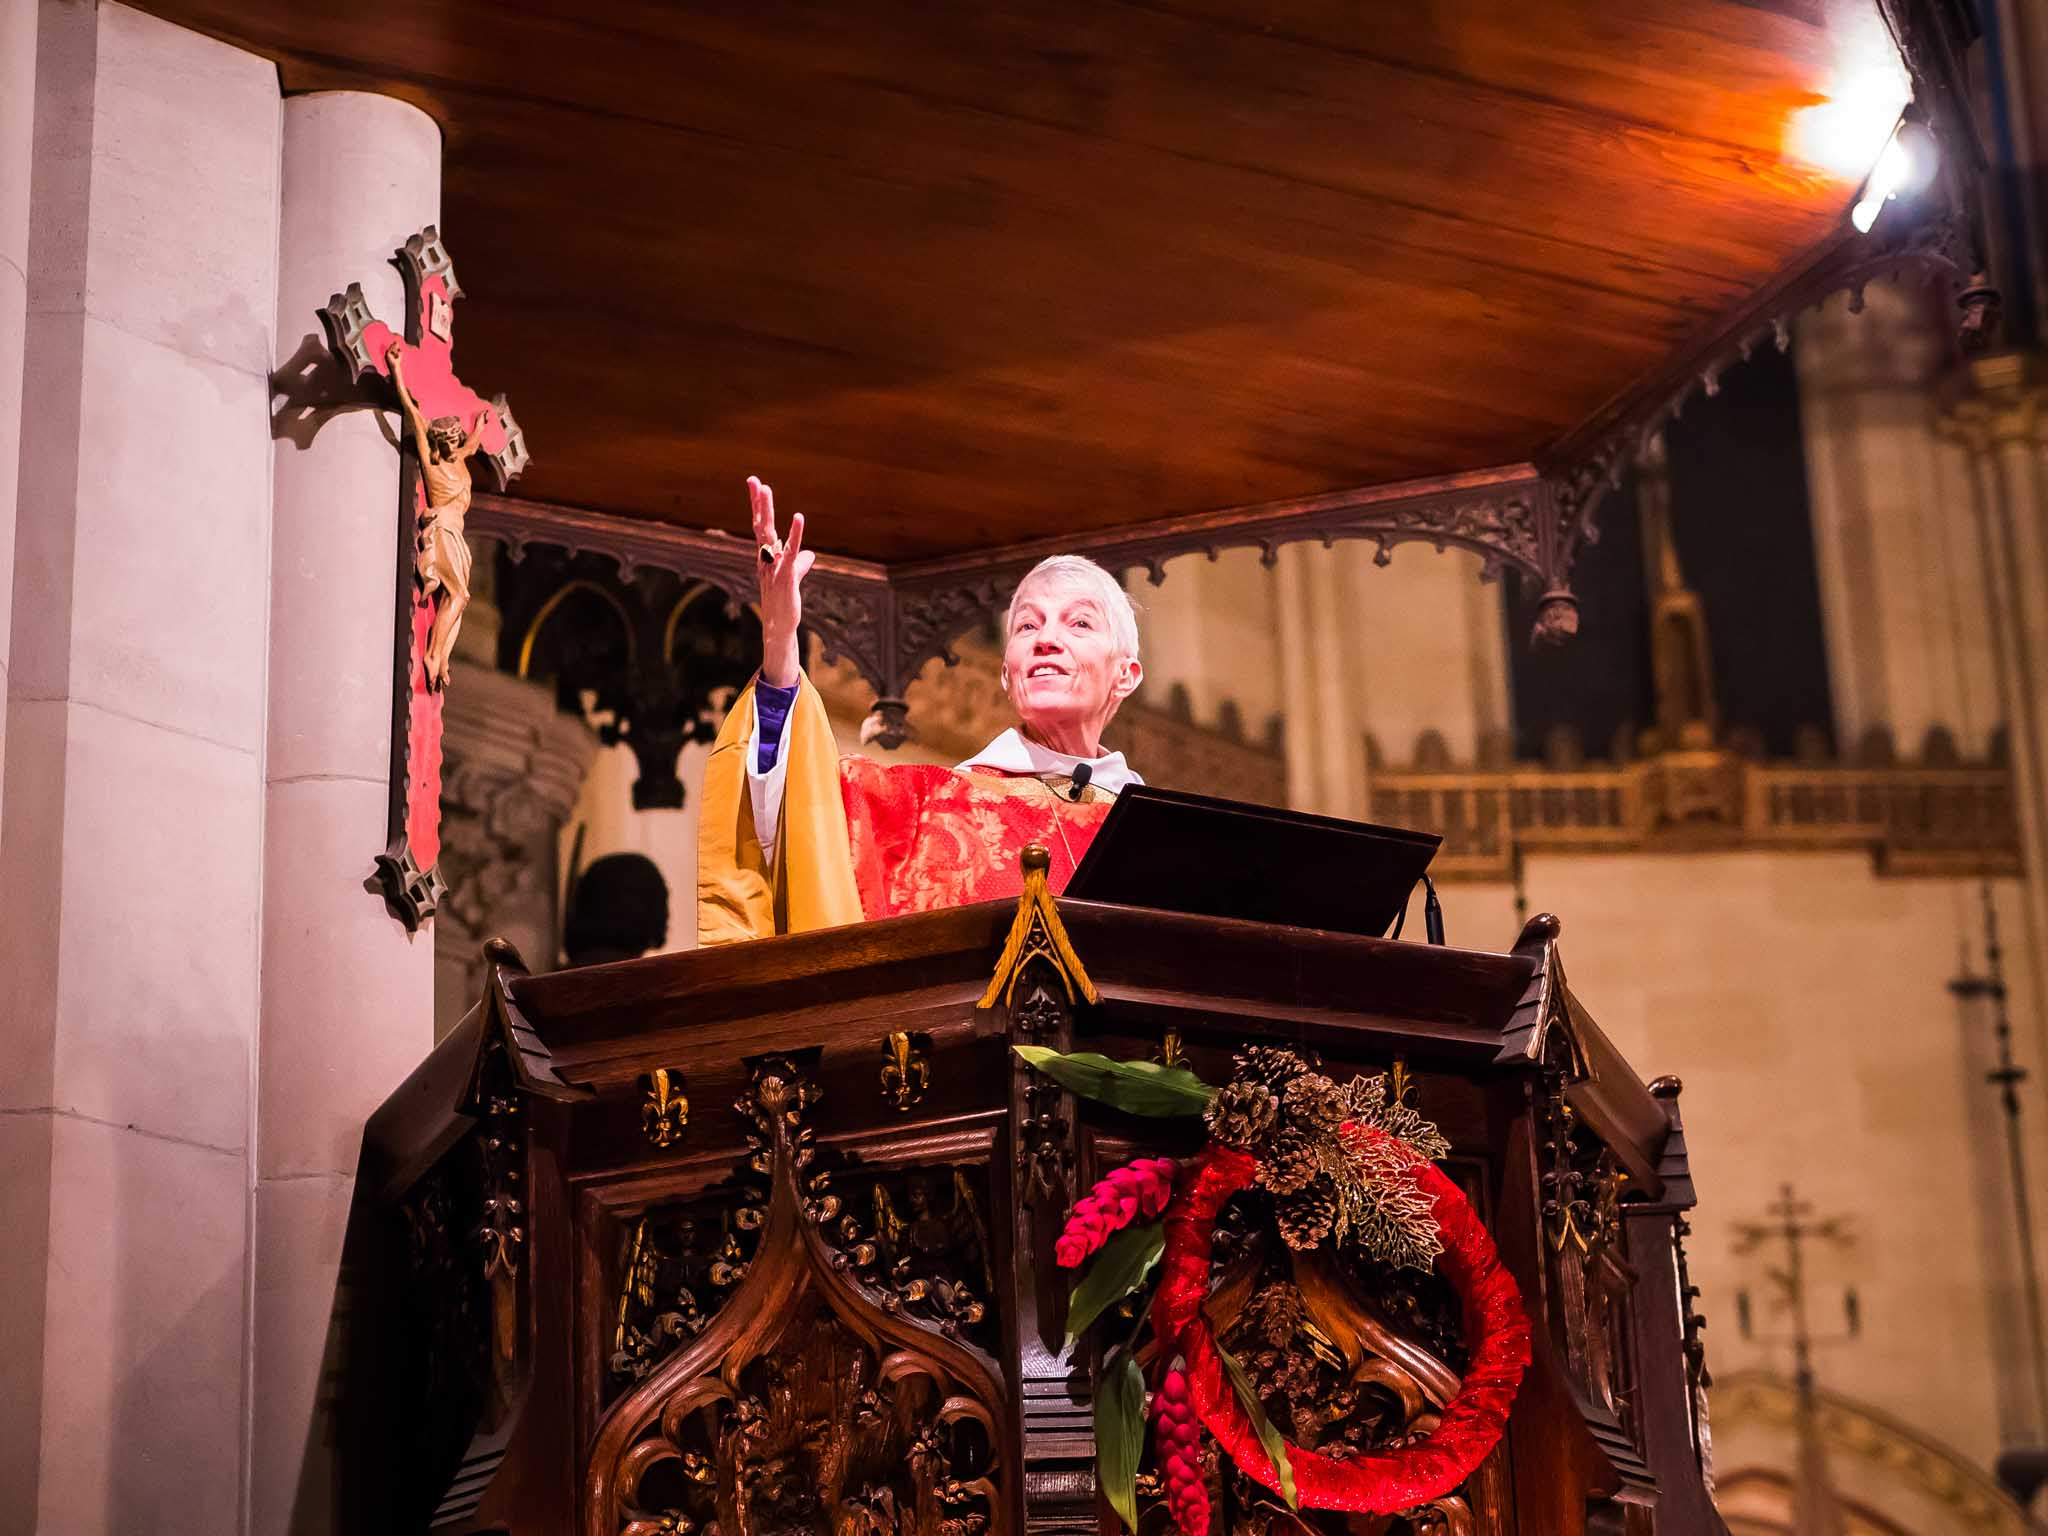 The Right Reverend Mary D. Glasspool, assistant bishop, was celebrant and preacher for the Solemn Mass on the Eve of the Epiphany.  Photo by Ricardo Gomez